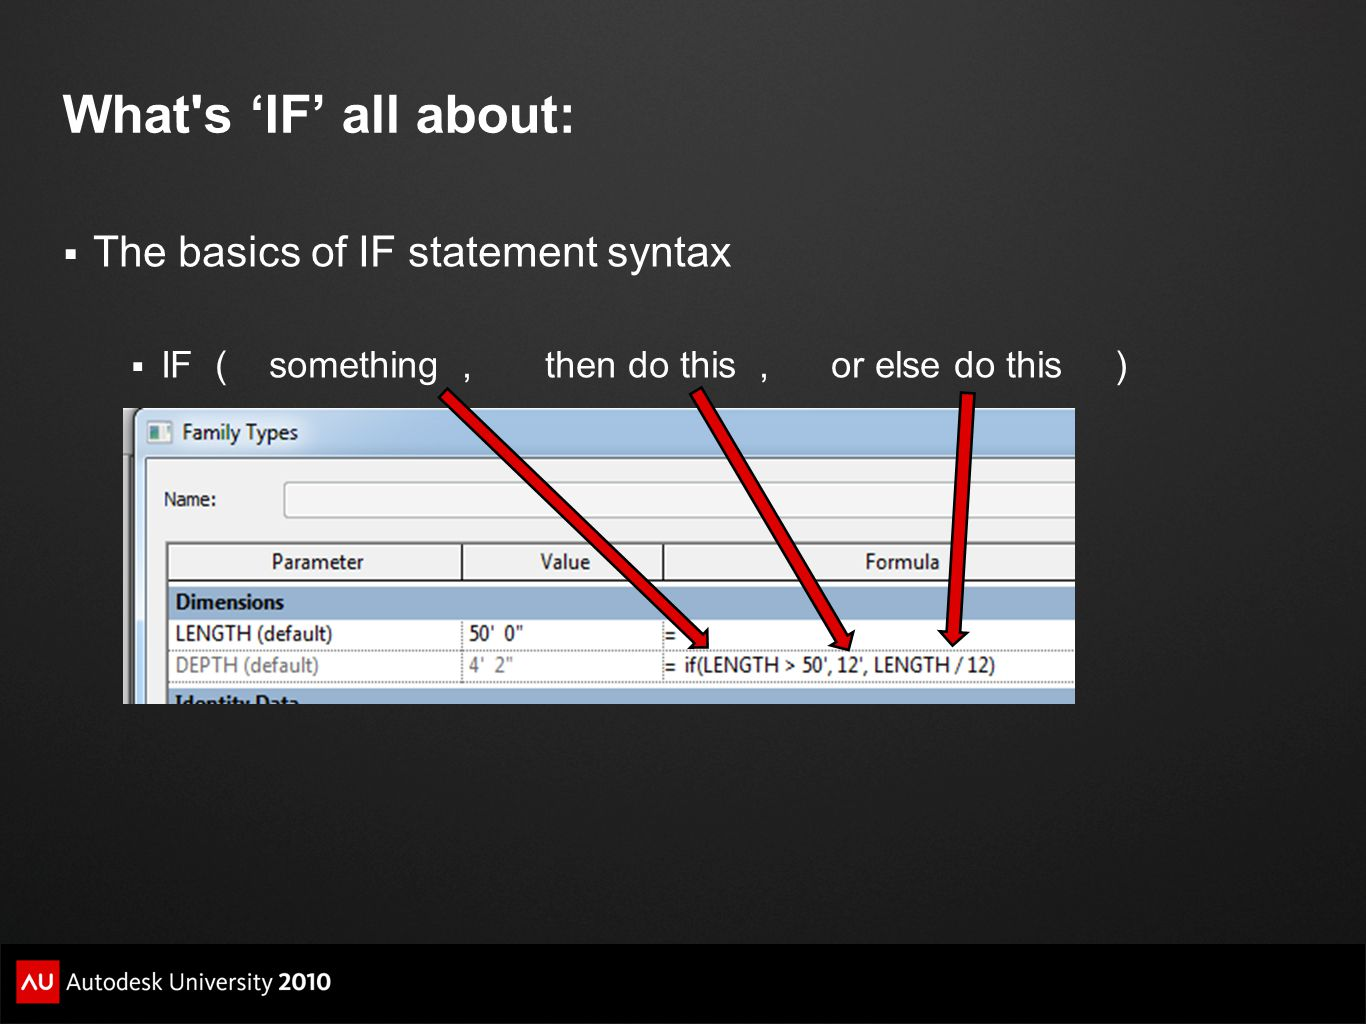 What s 'IF' all about: The basics of IF statement syntax